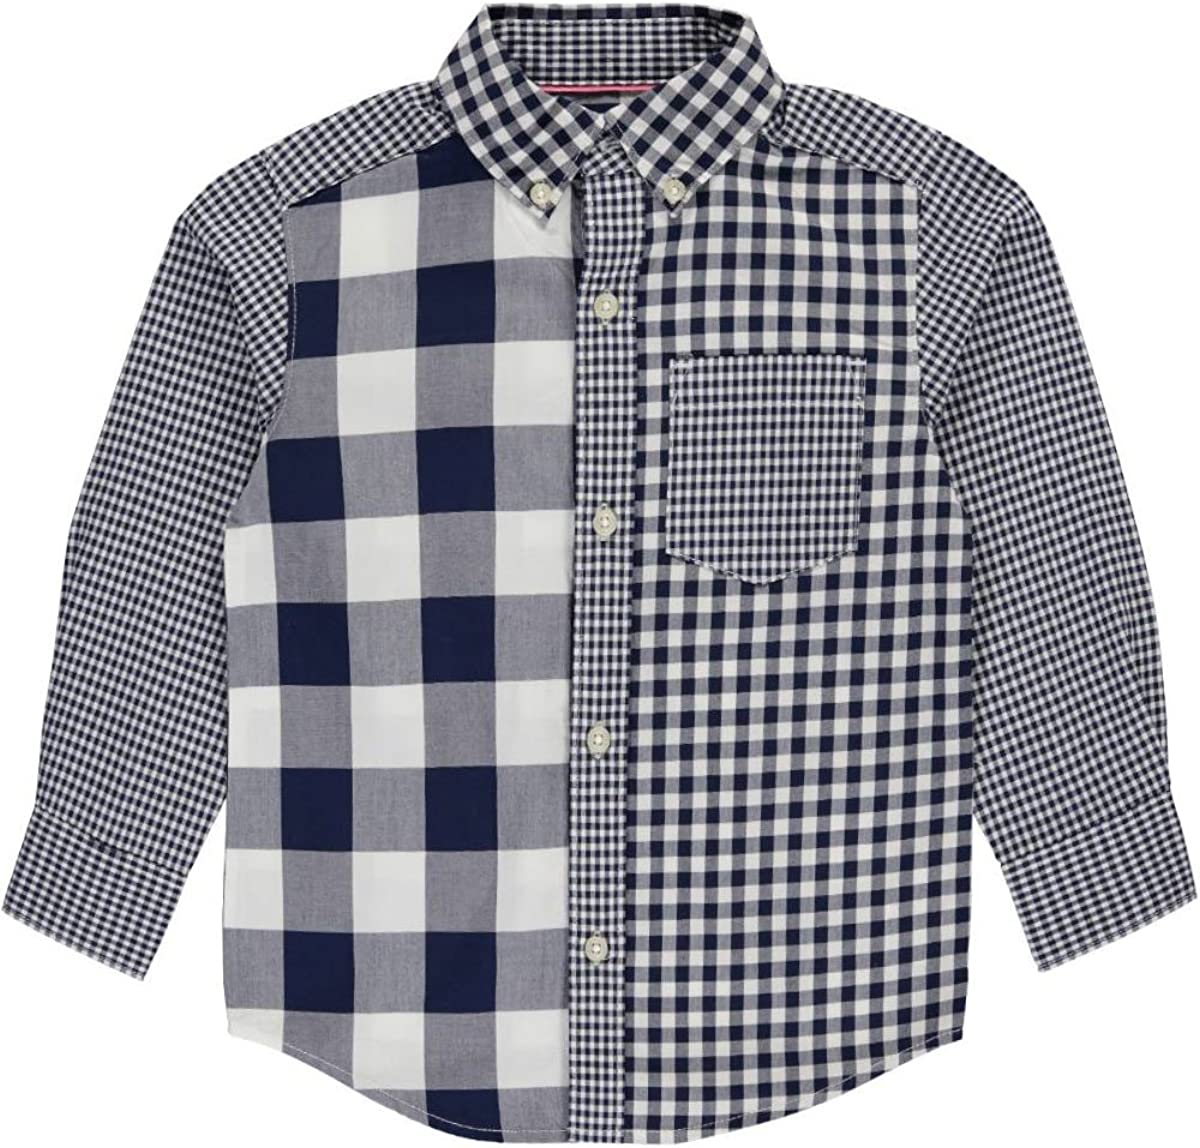 2t Carters Little Boys Toddler Multi-Check Button-Down navy